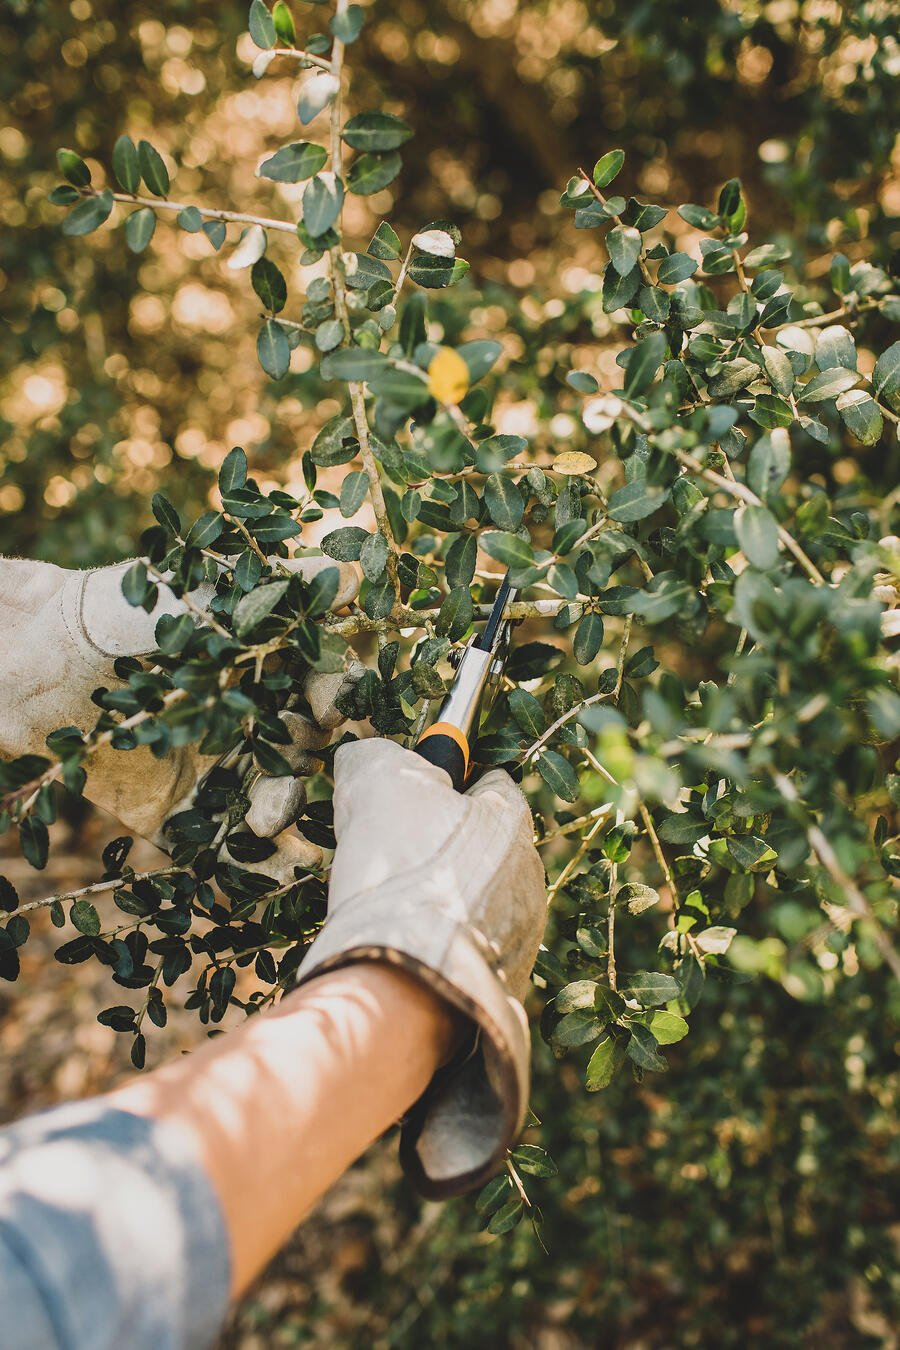 A person cutting yaupon holly with clippers in preparation for roasting yaupon leaves for tea.